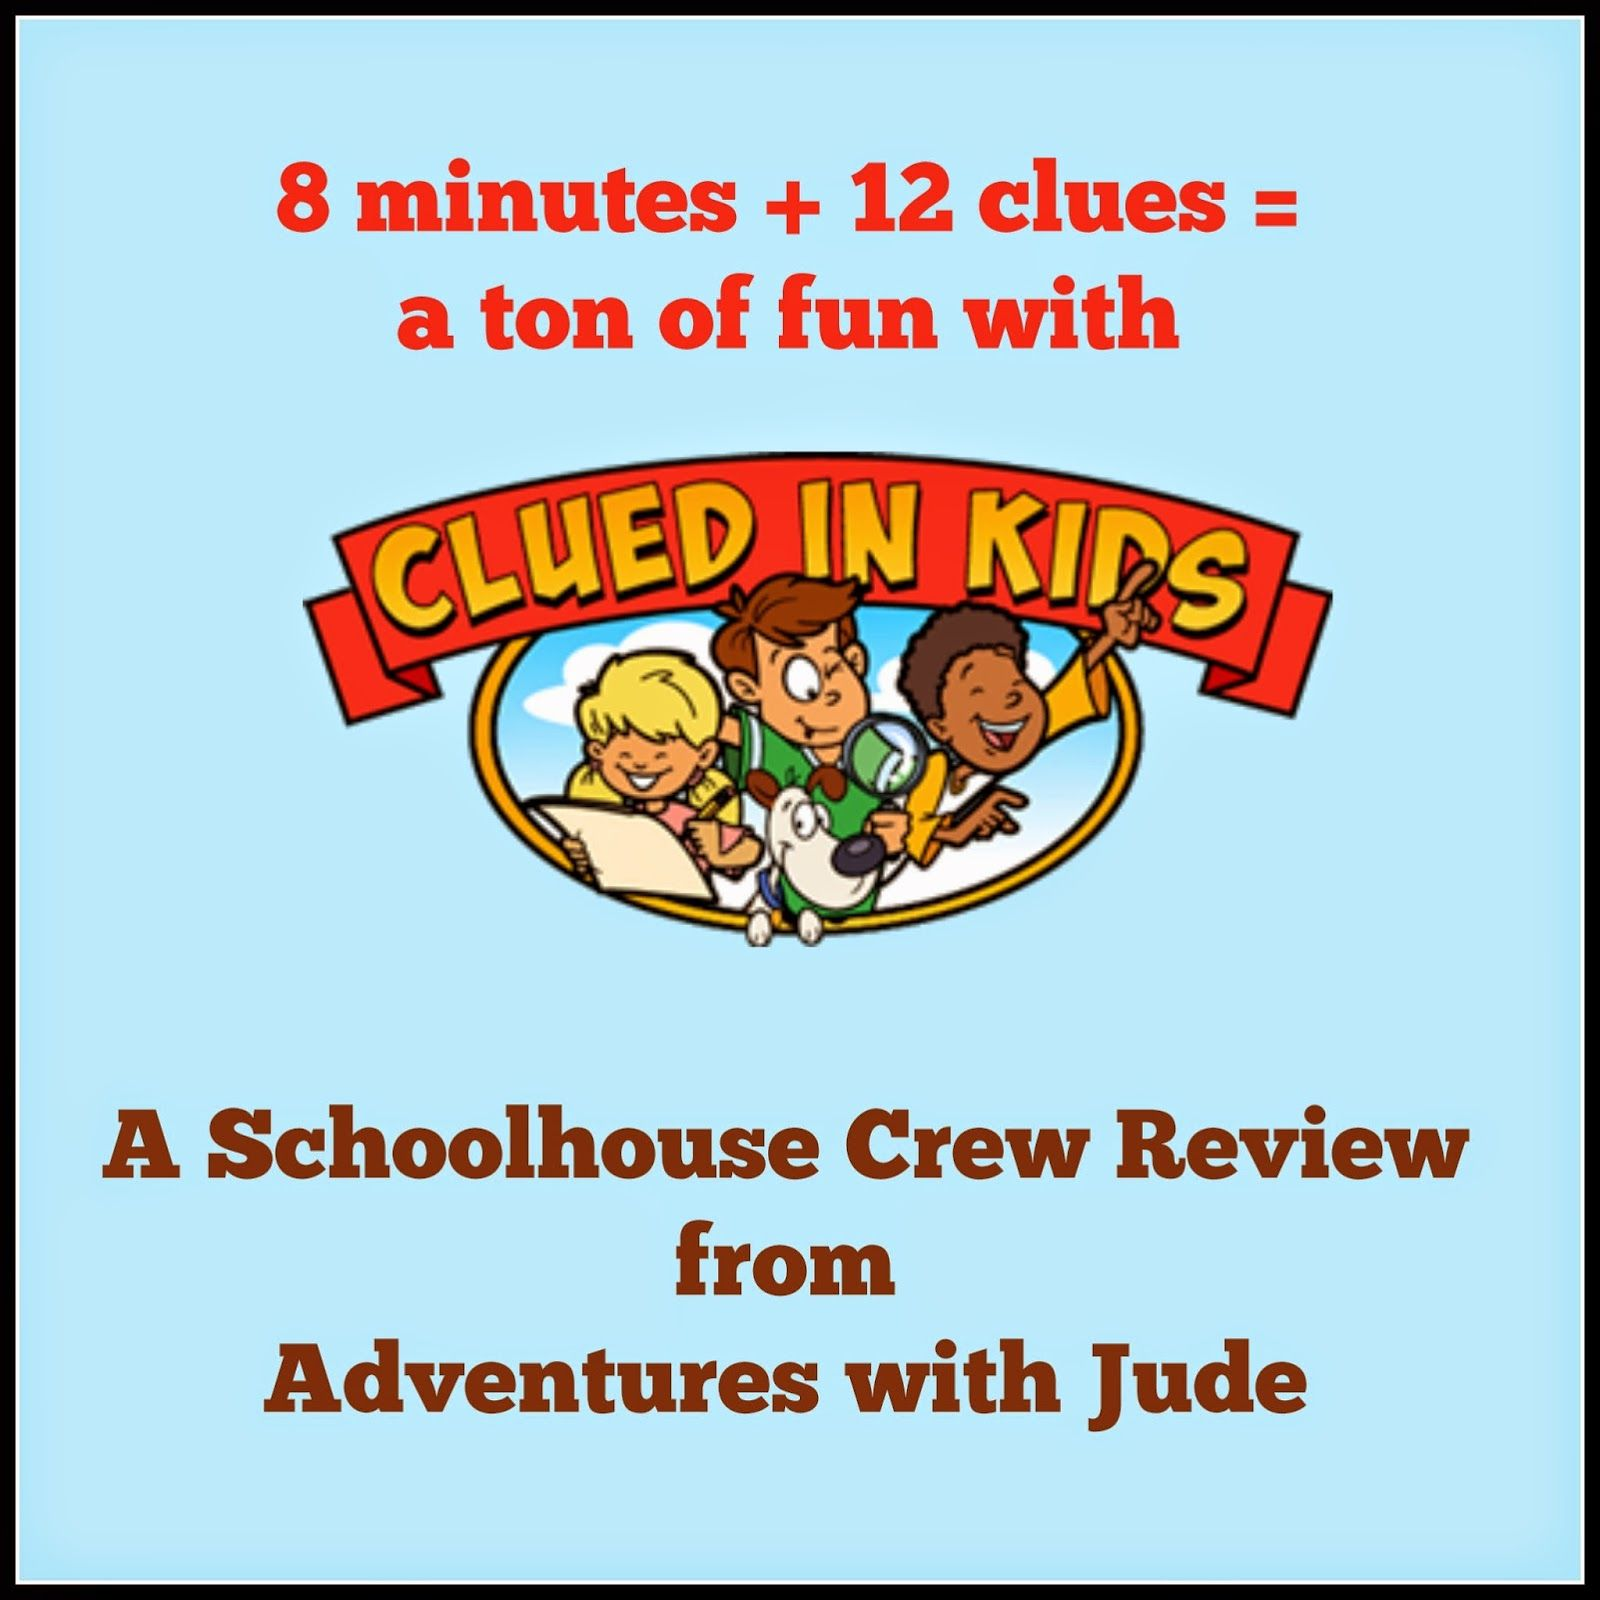 Clued In Kids (A Schoolhouse Crew Review)